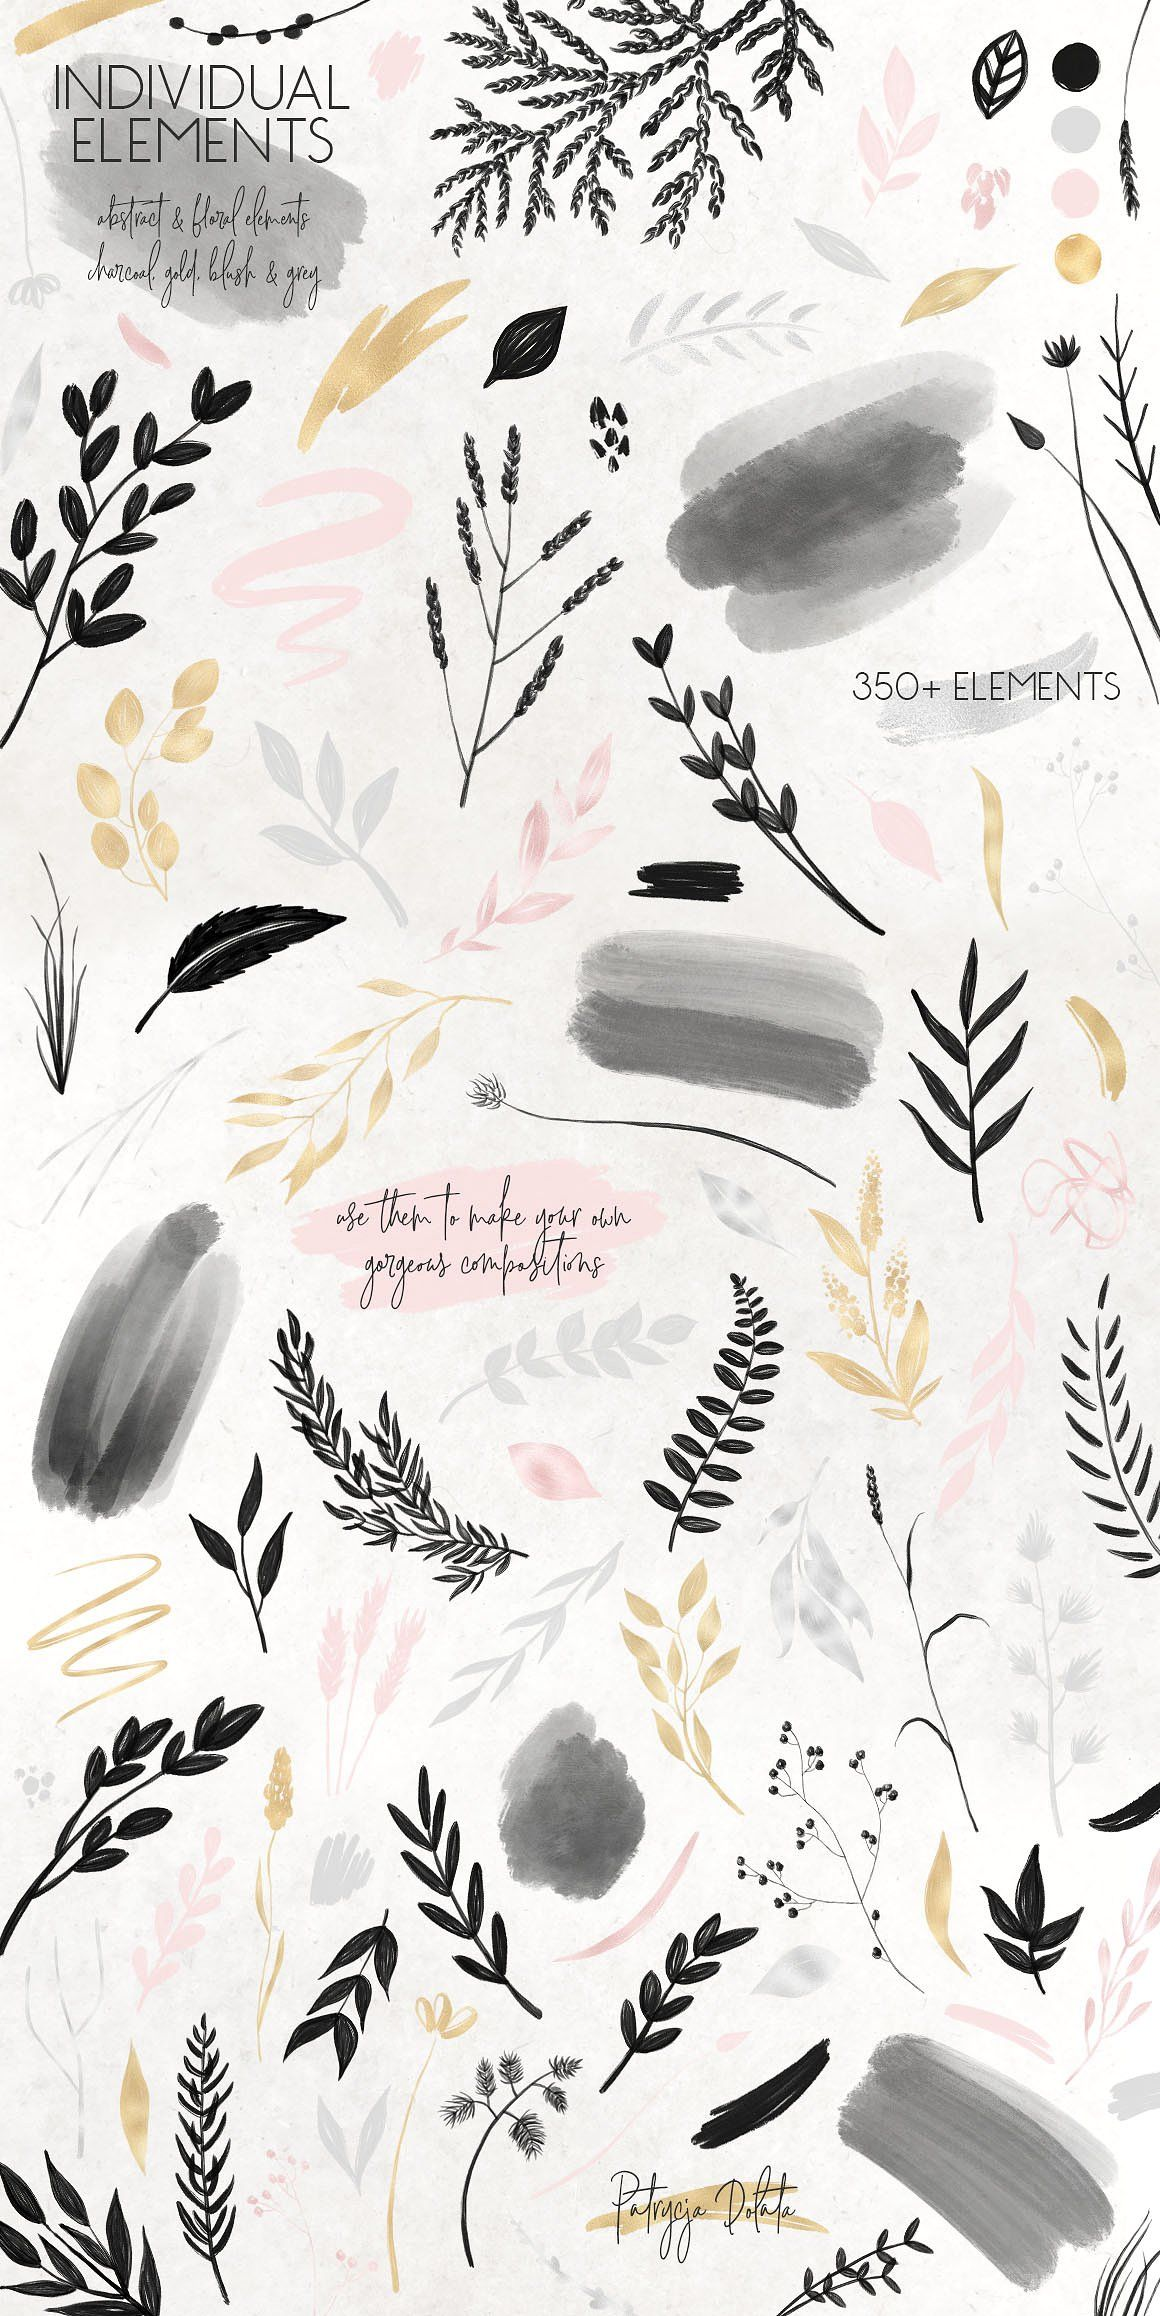 Charcoal, Gold & Blush Collection by Patrycja Dolata on Creative Market